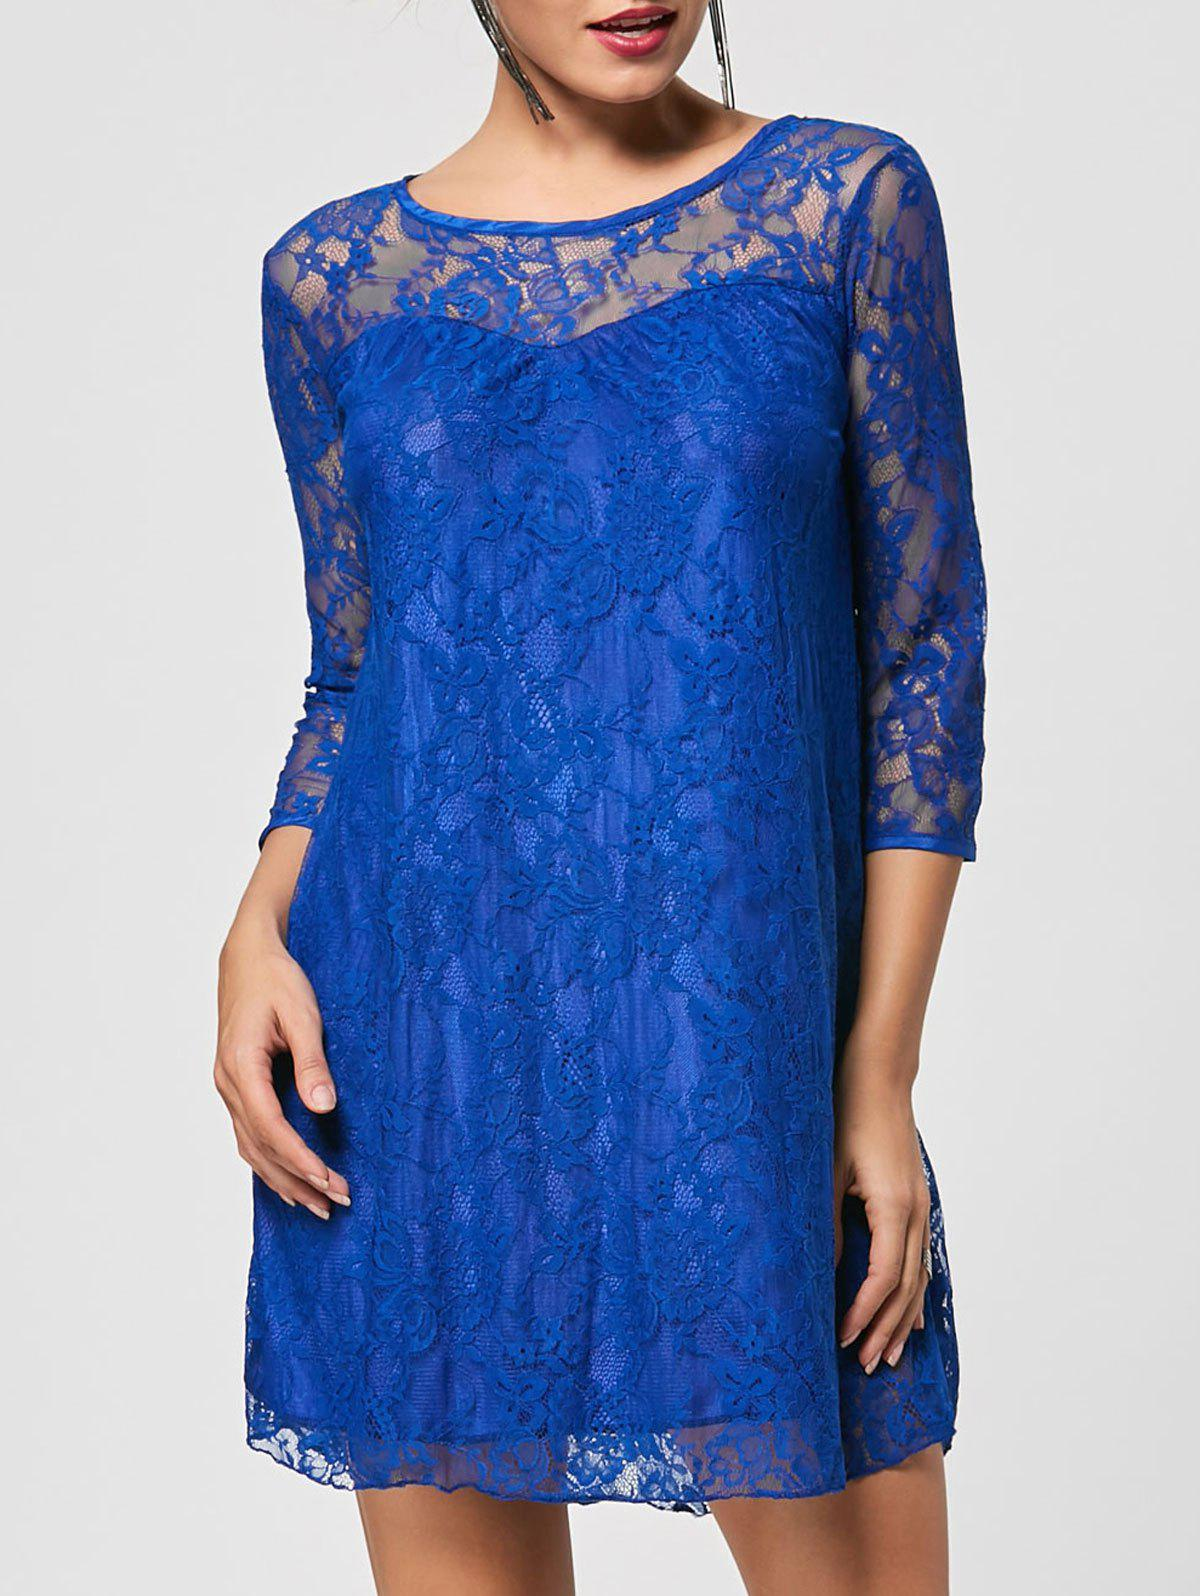 Store Stylish Round Collar 3/4 Sleeve Lace Spliced See-Through Women's Dress